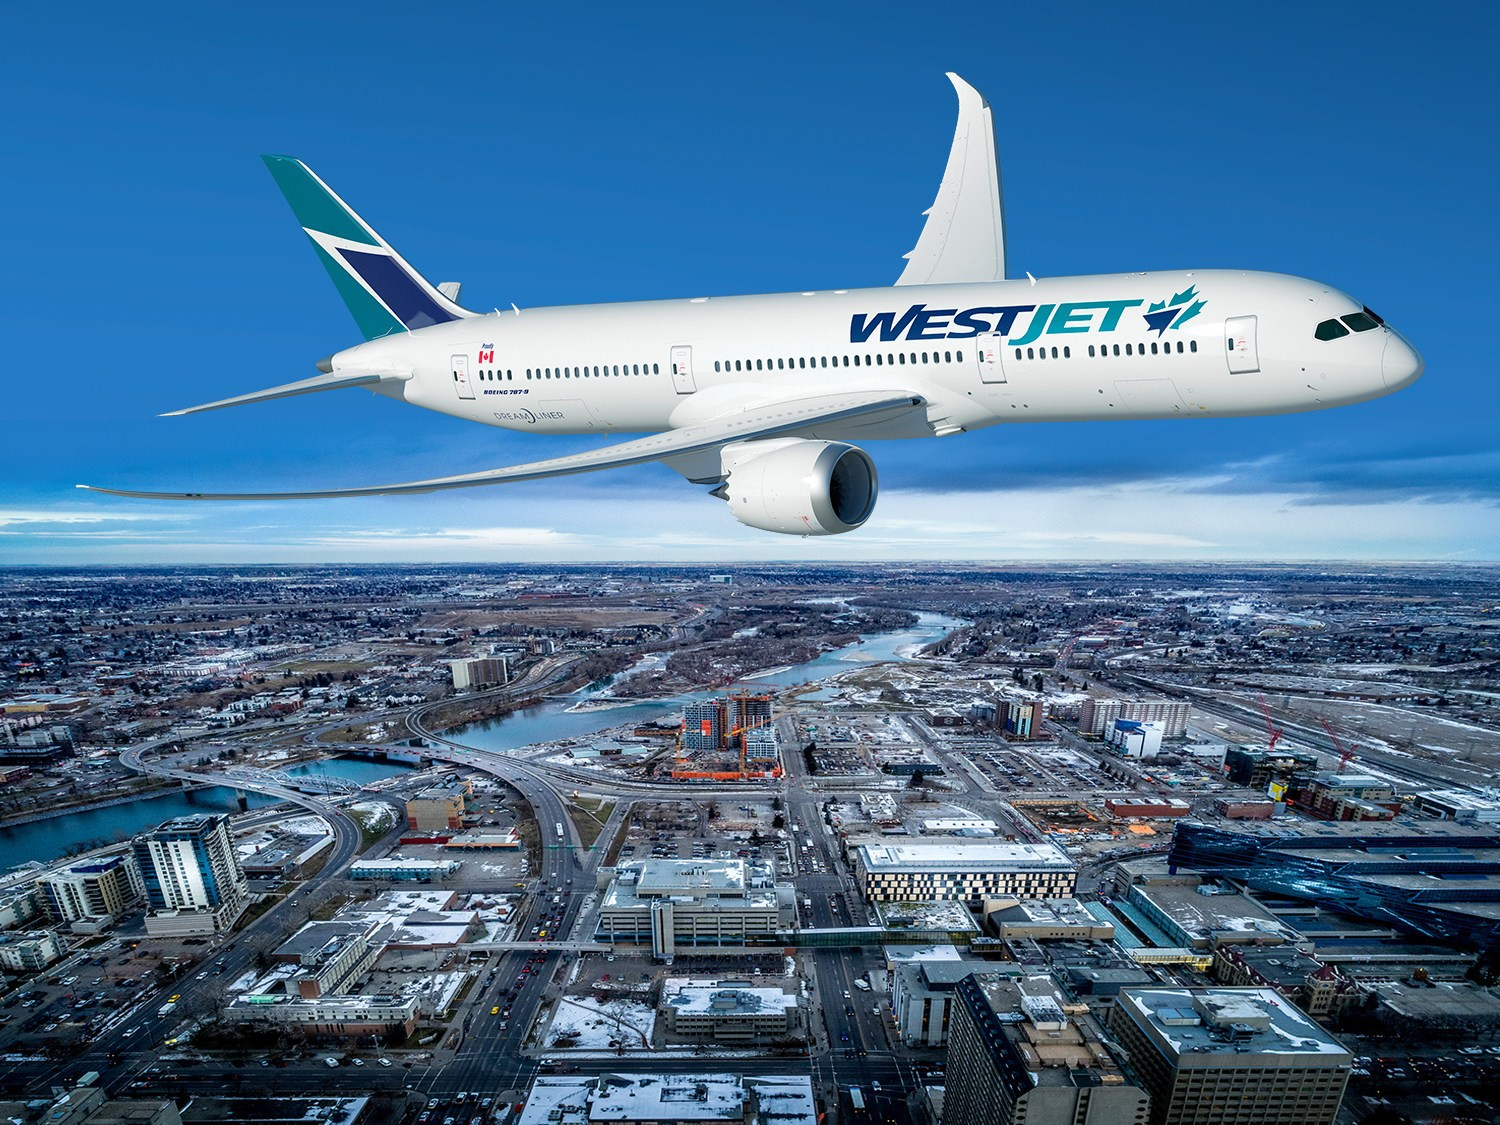 A Boeing 787-9 Dreamliner in WestJet livery flies over a cityscape.